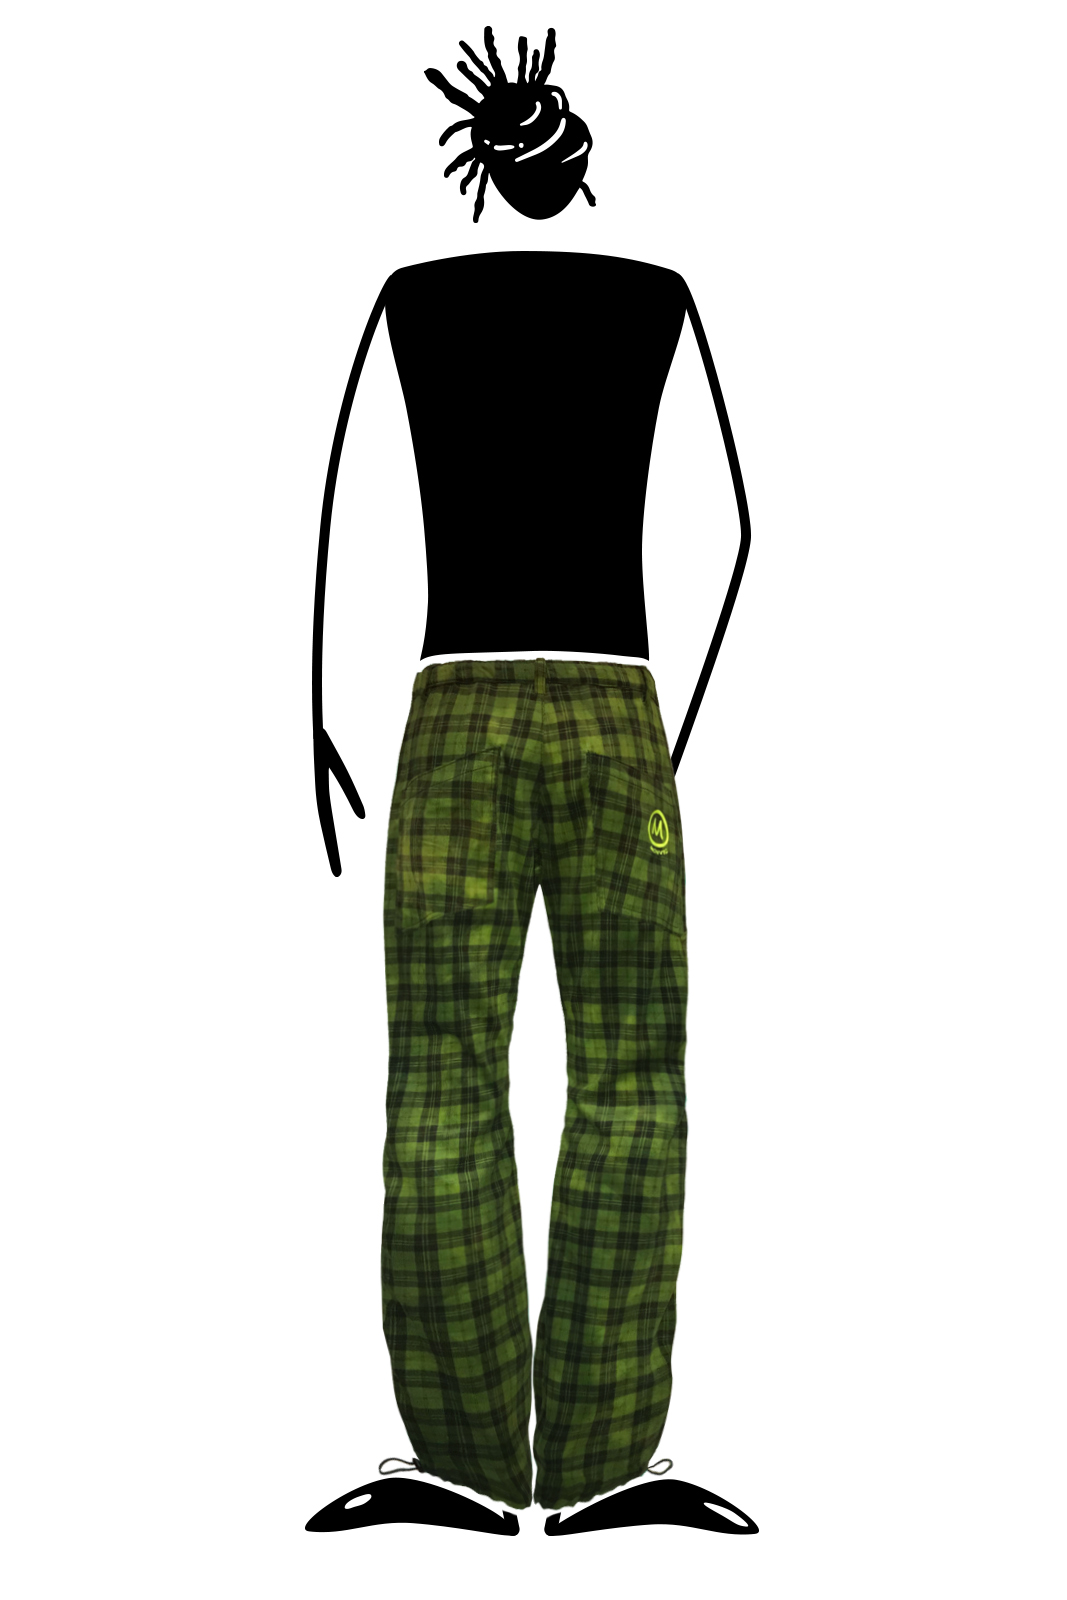 Fine ribbed corduroy pants for men prince of wales green GRILLO Monvic for climbing